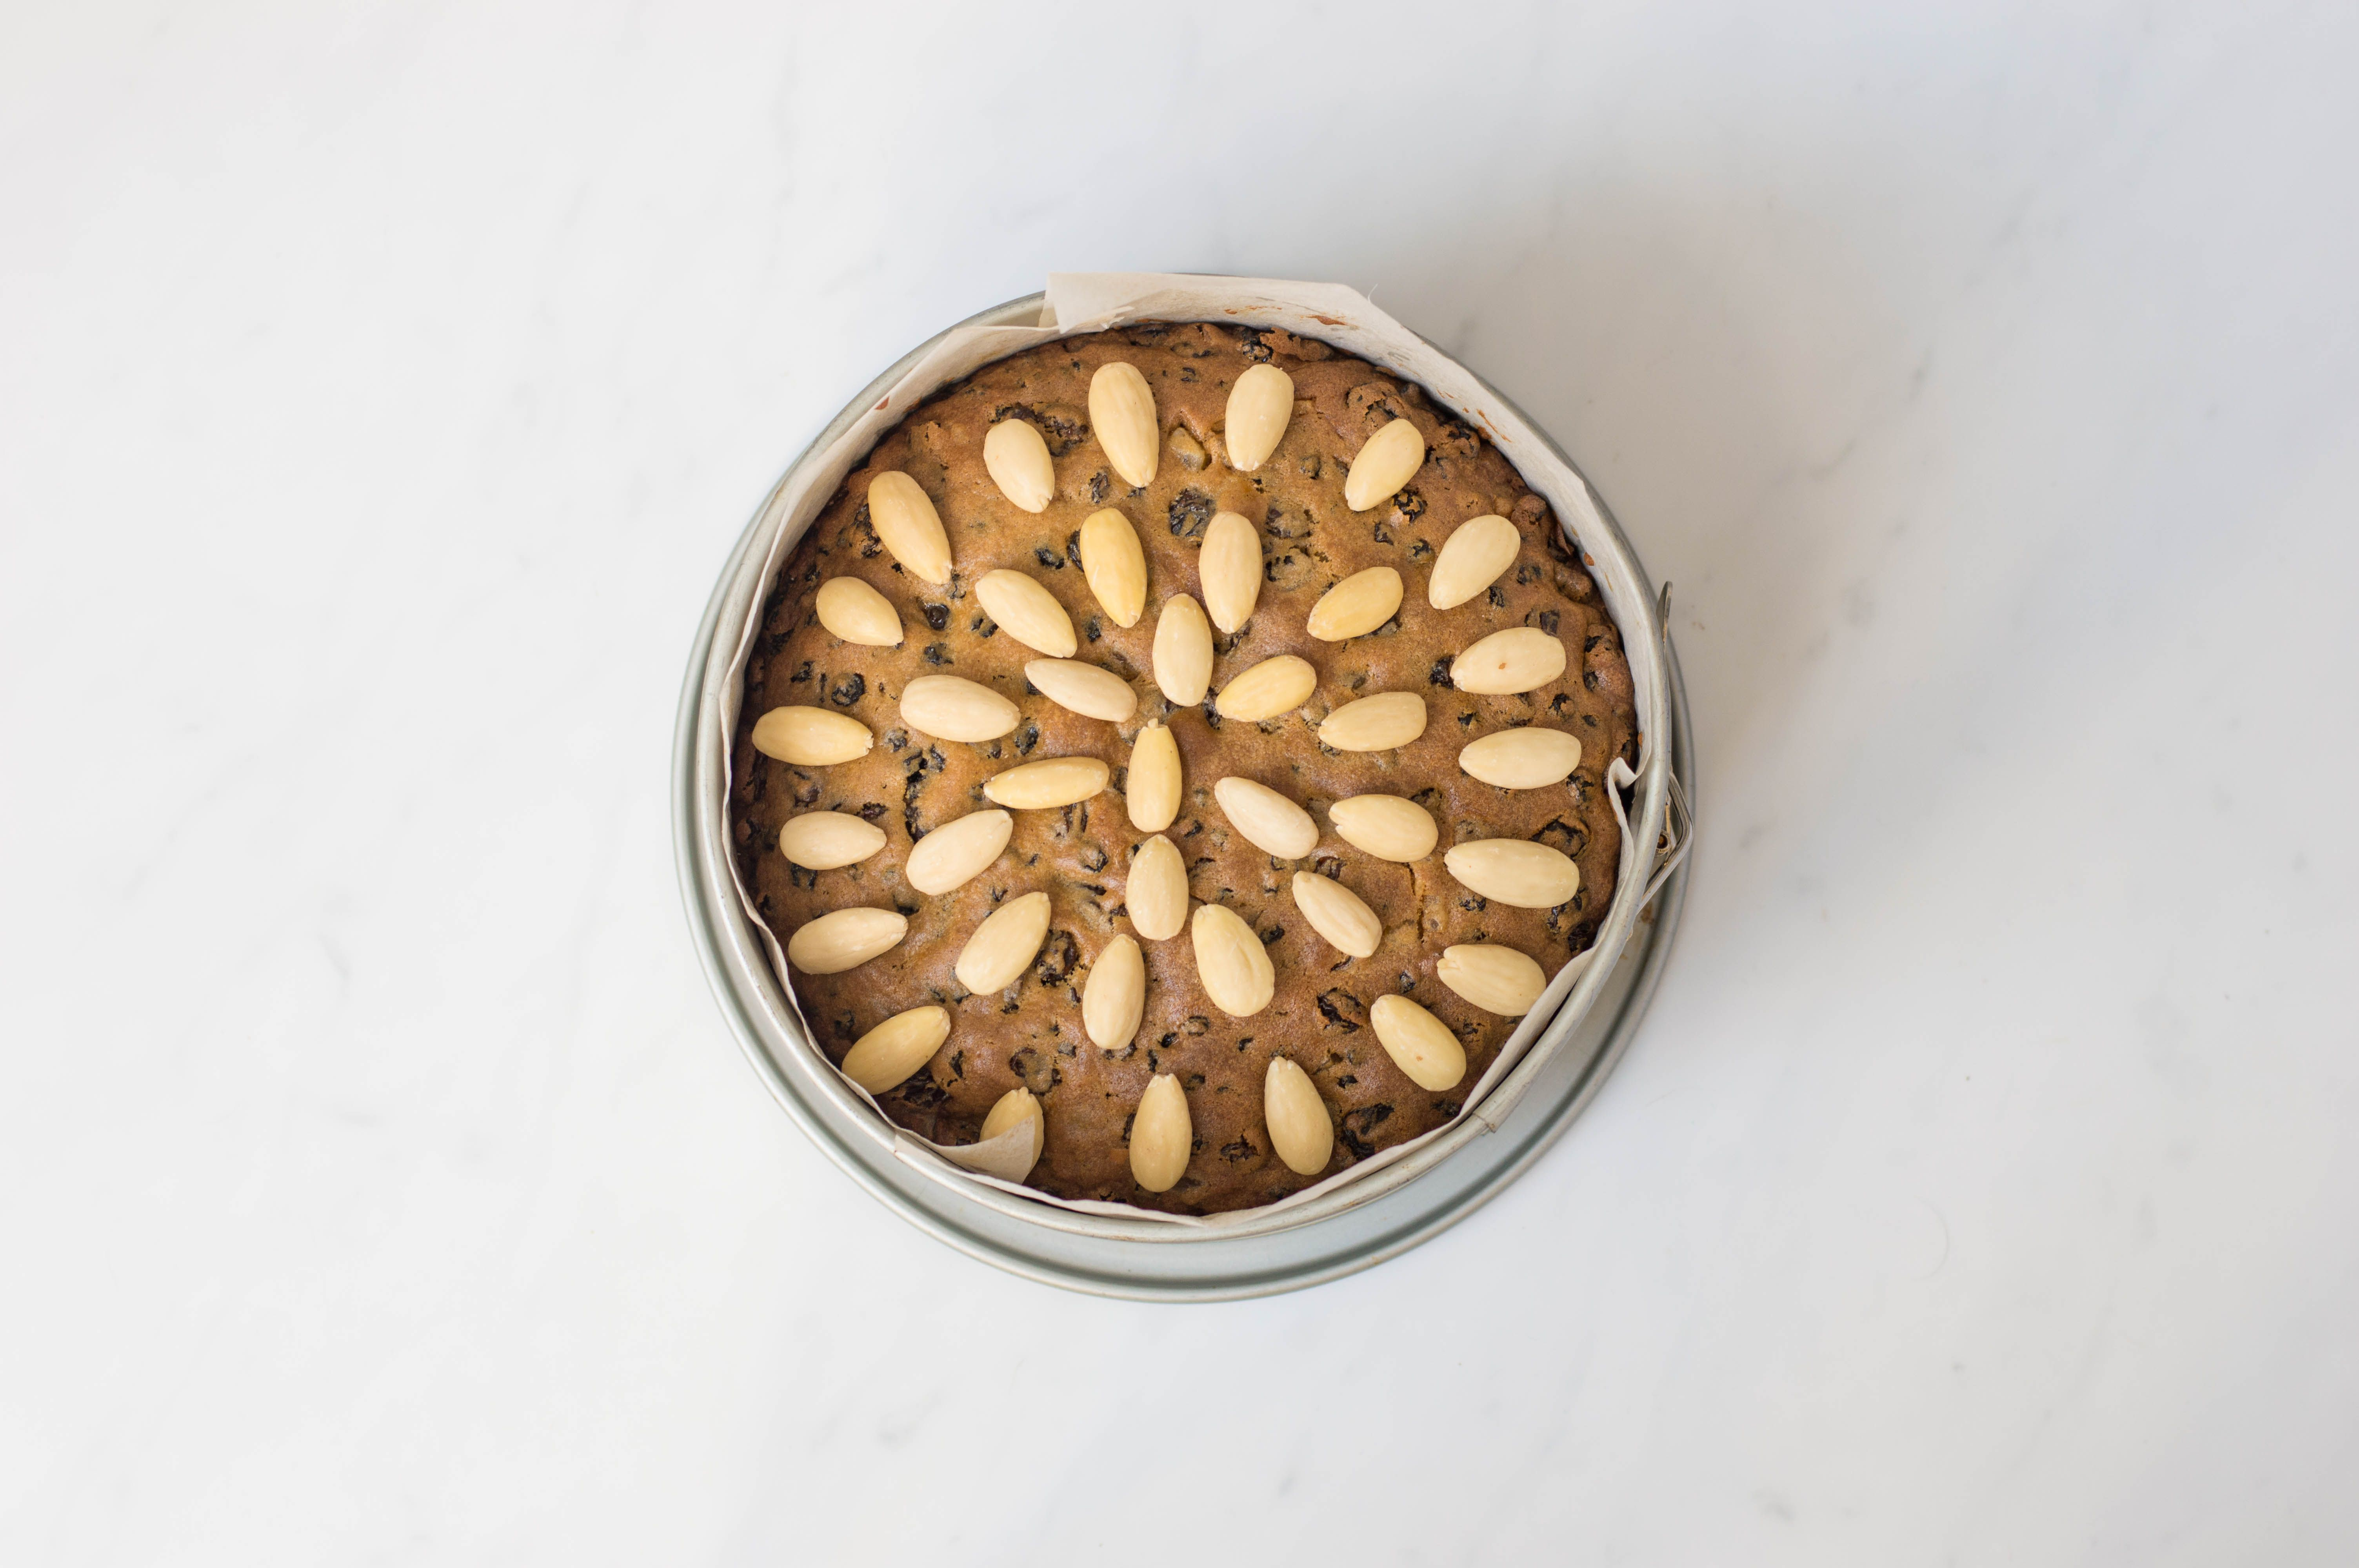 Cook Scottish dundee cake and add almonds to top